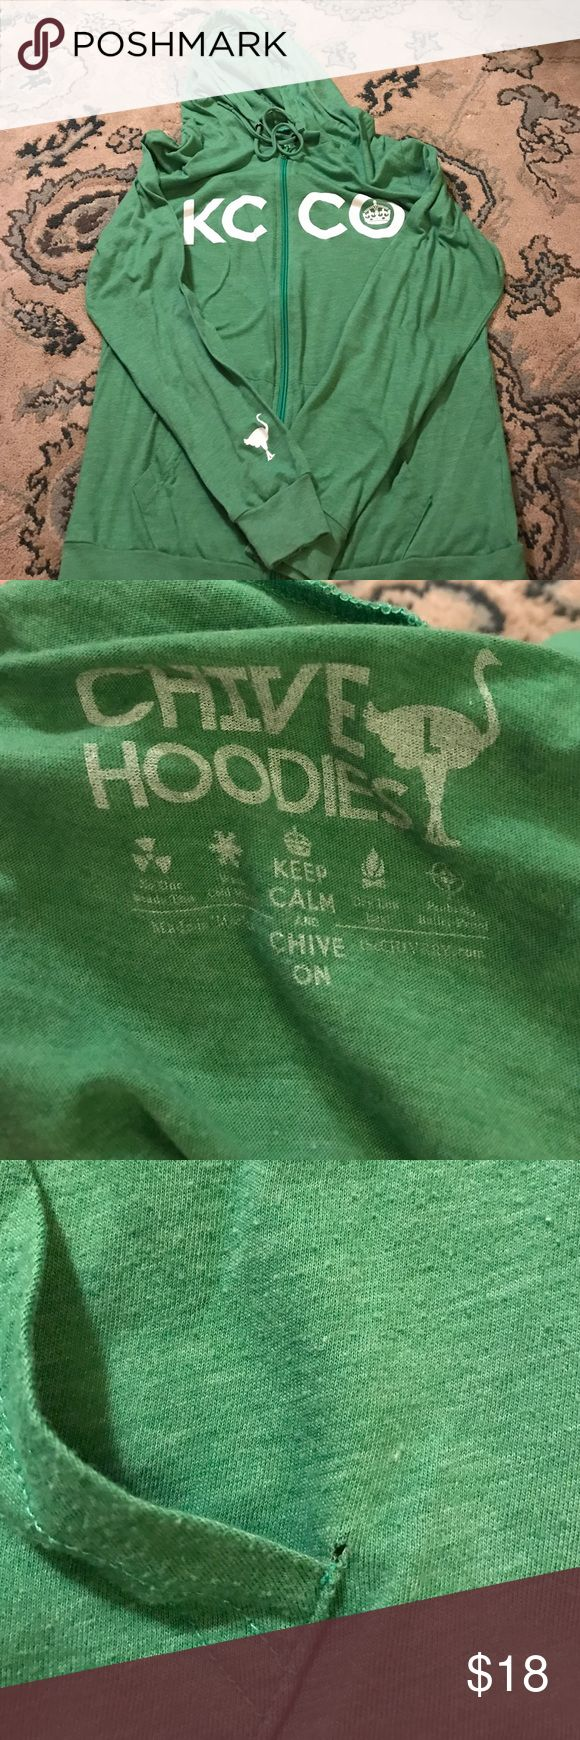 Men's Large Chive hoody Green KCCO hoody. Tshirt material. Can be unisex. Small hole forming near the pocket shown in photo. All Chive items 2 for $25. Comment below and I'll bundle them for you. Chive on! chive Shirts Sweatshirts & Hoodies